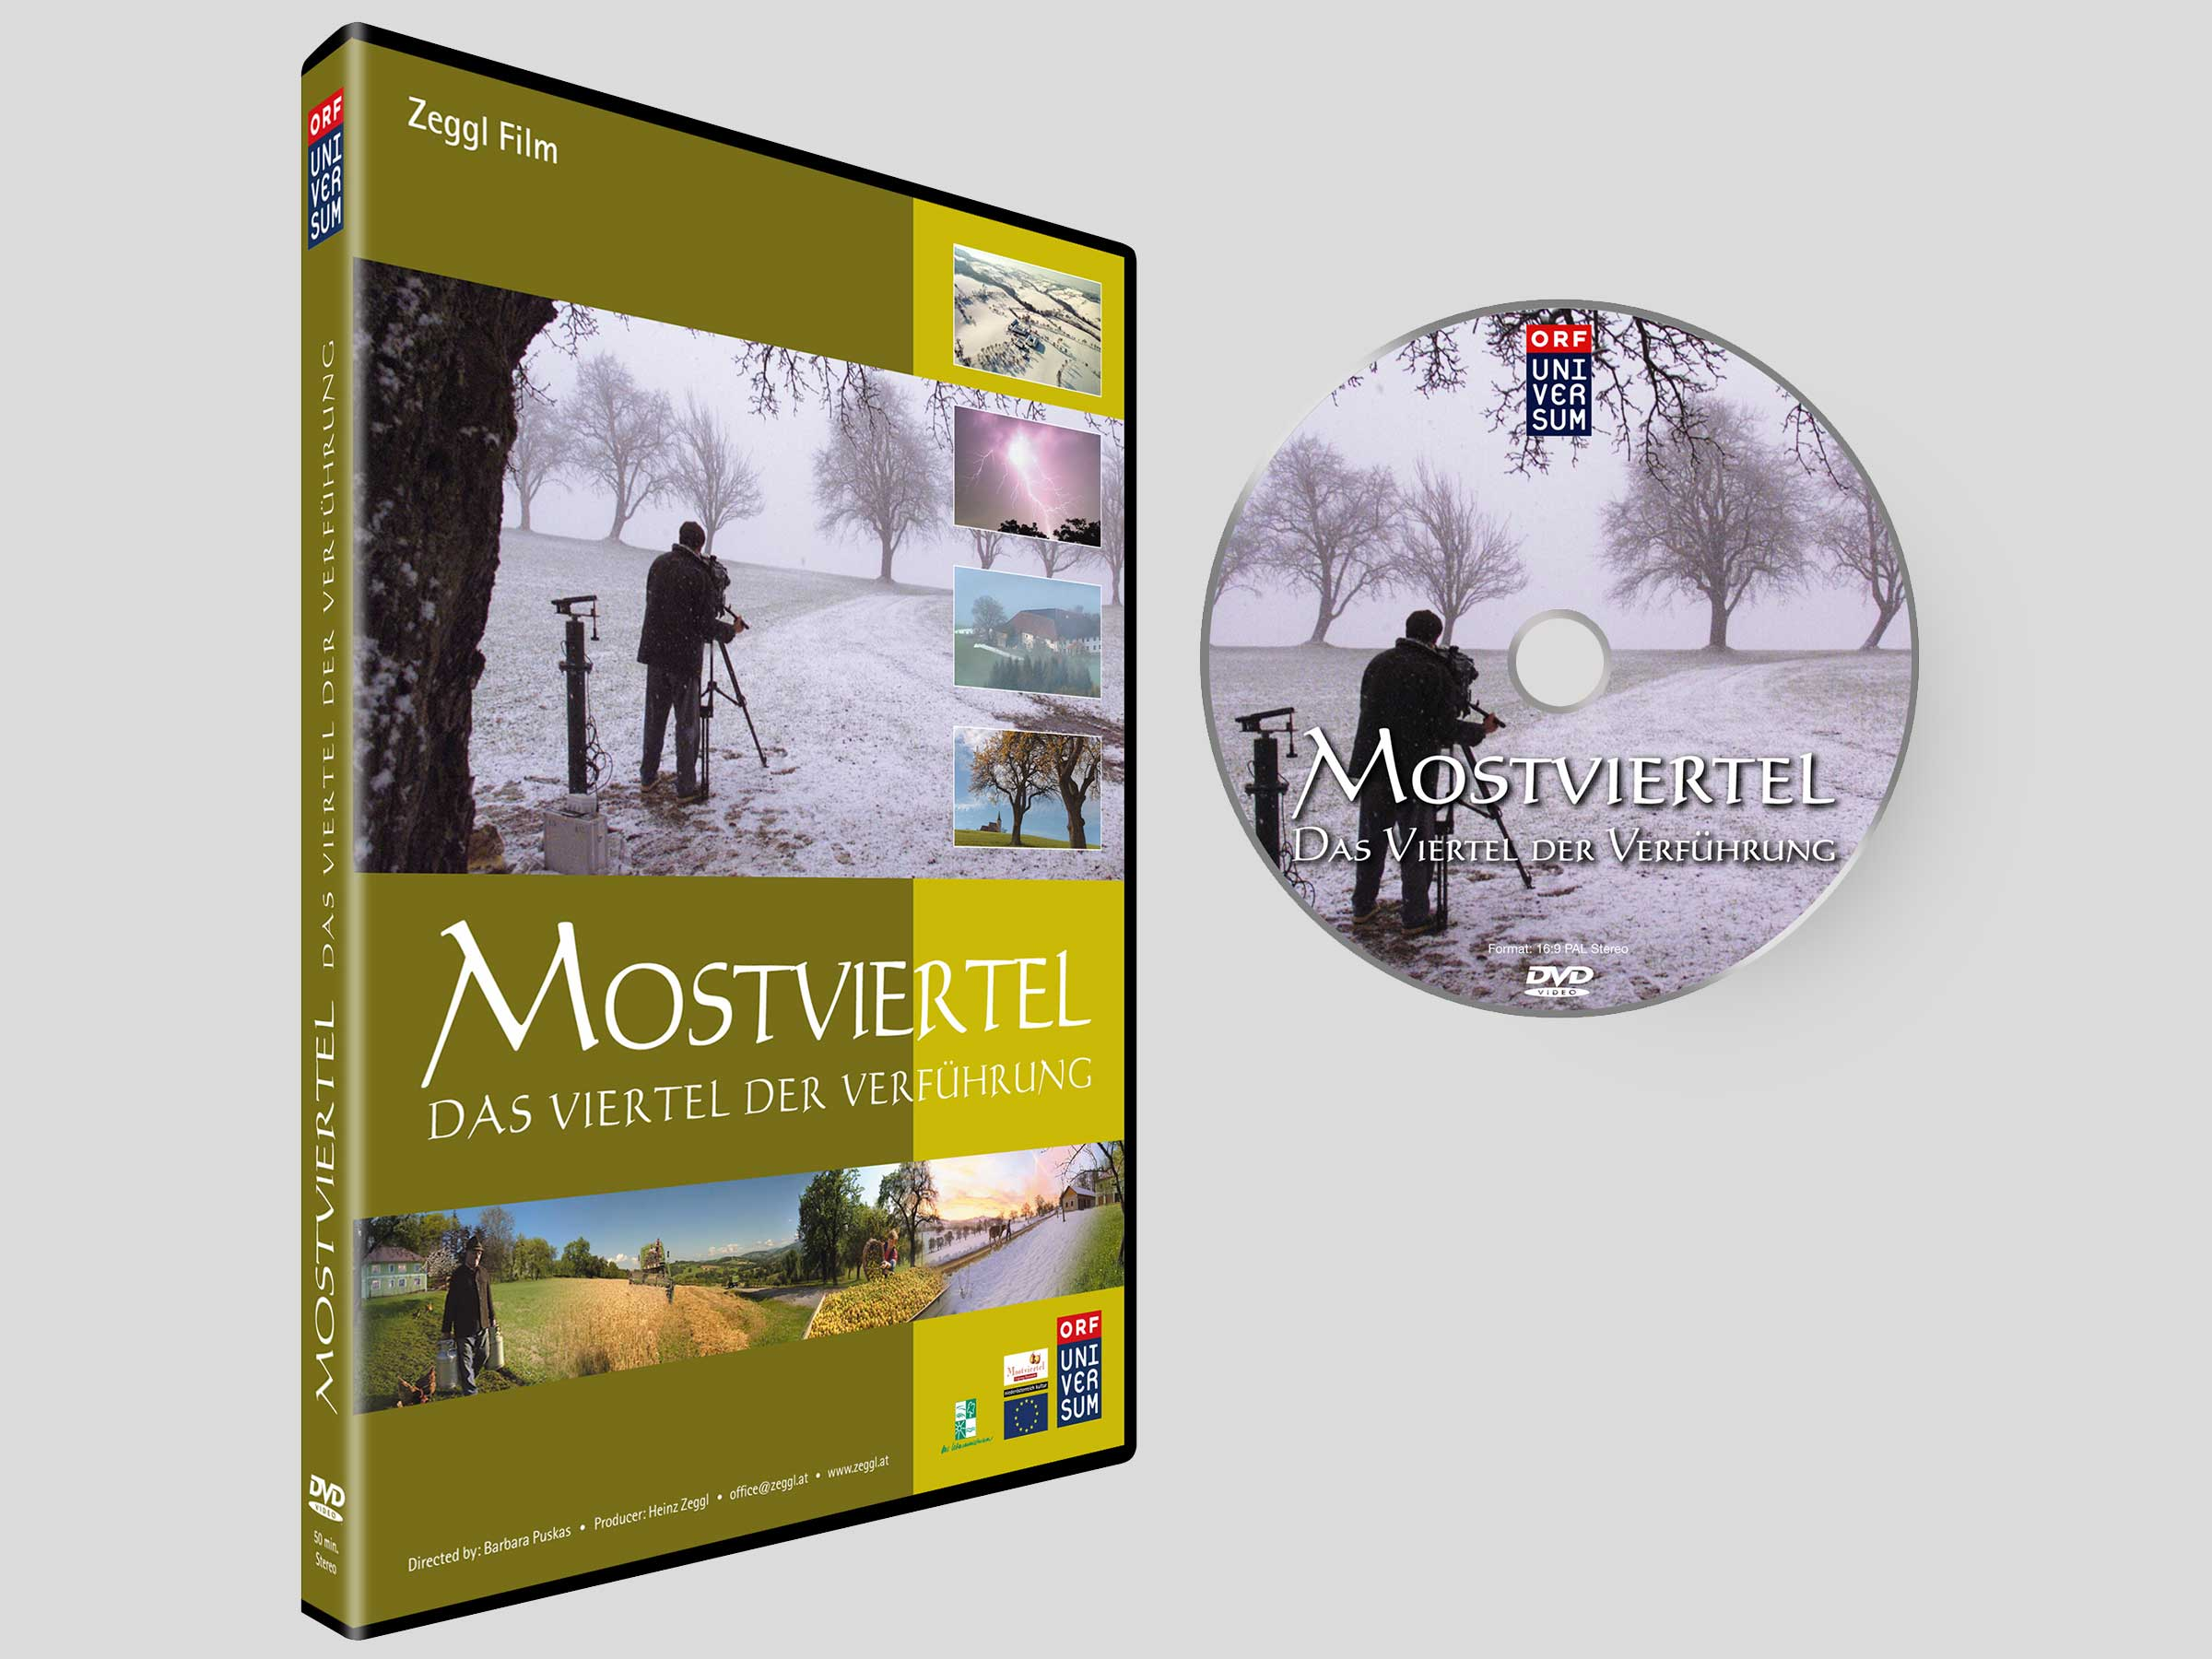 ORF-universum-most-viertel-zeggl-film-DVD